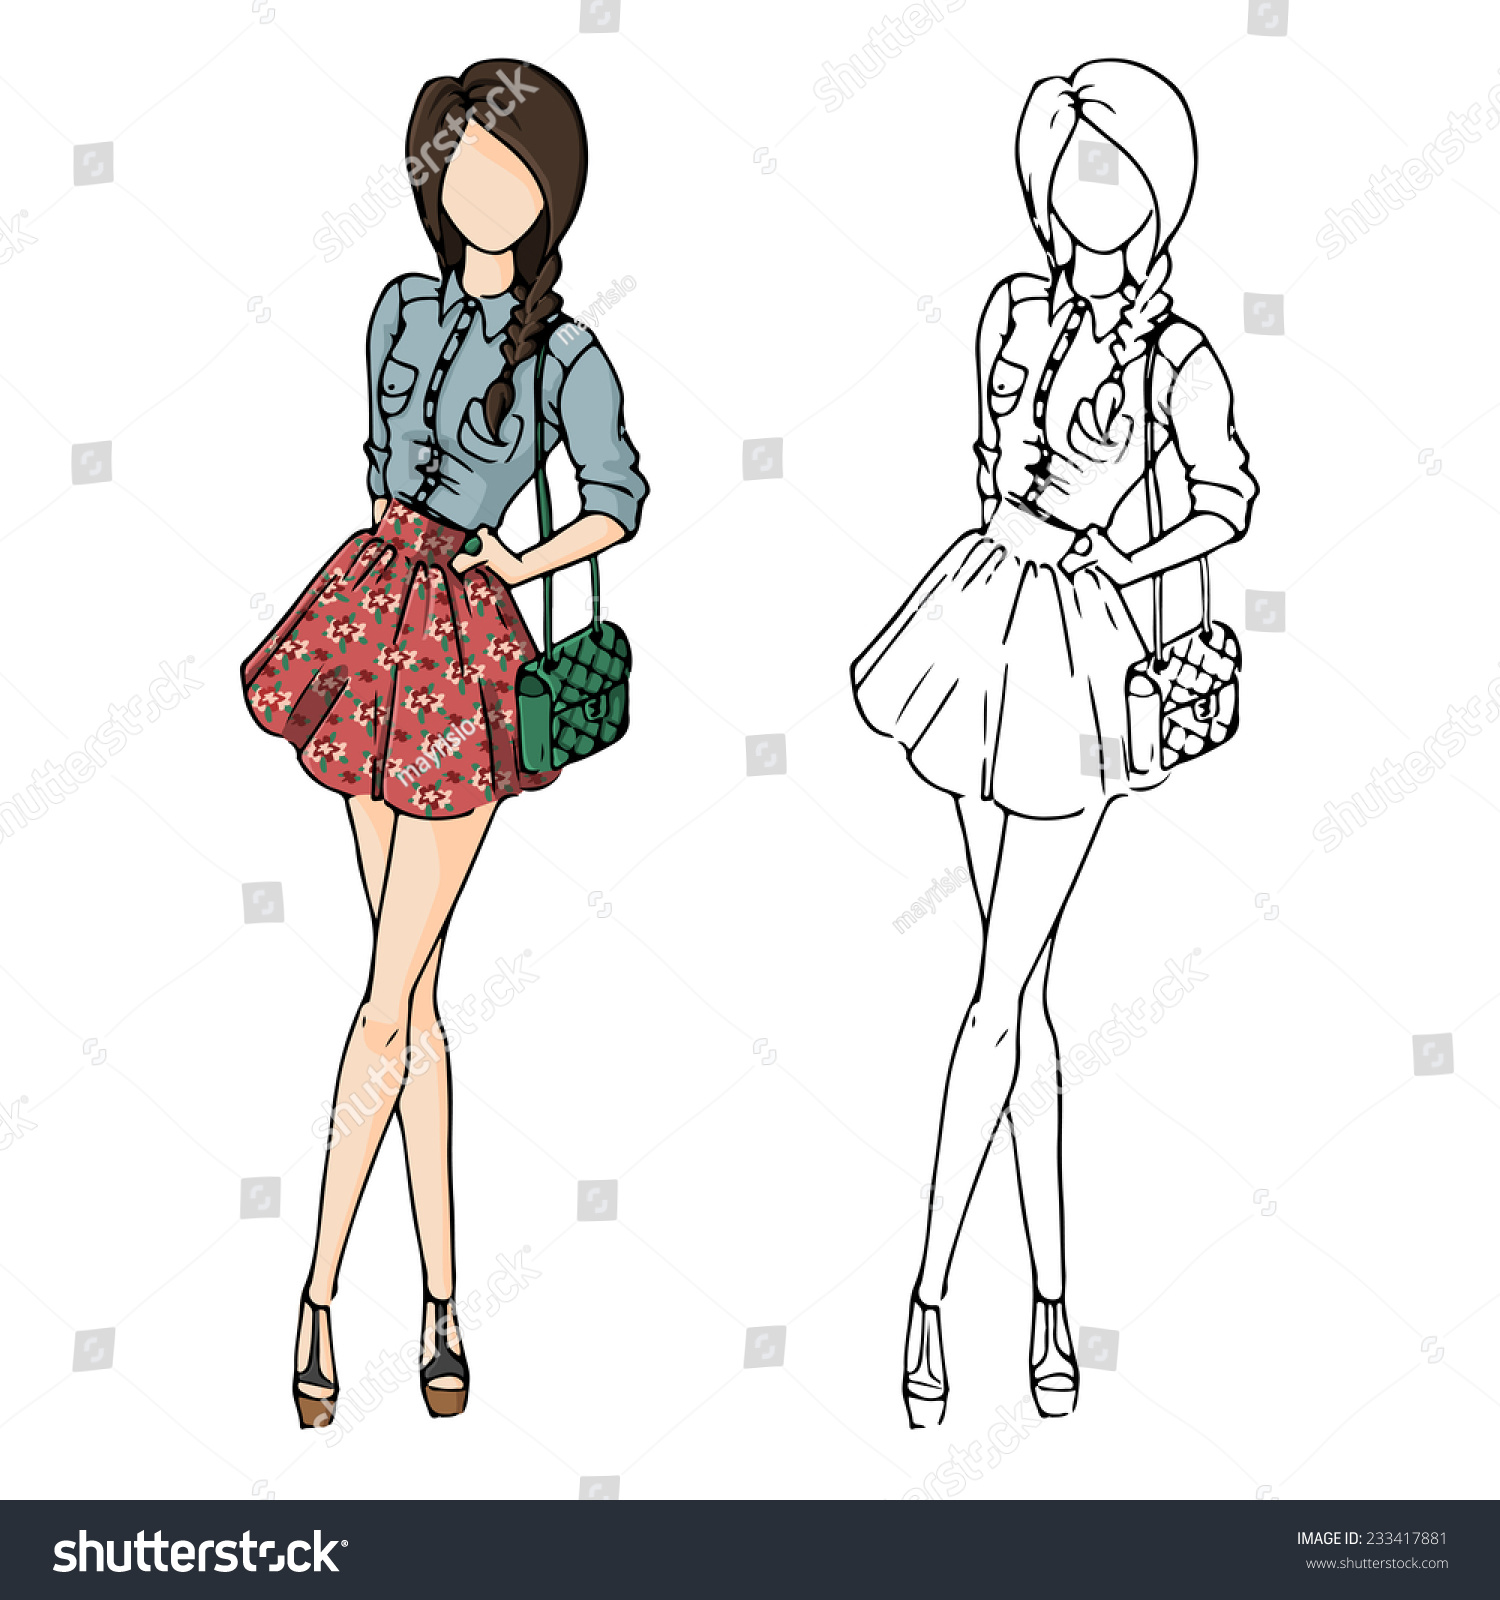 Fashion Sketch Drawing Girls Beautiful Looks Stock Vector 233417881 Shutterstock